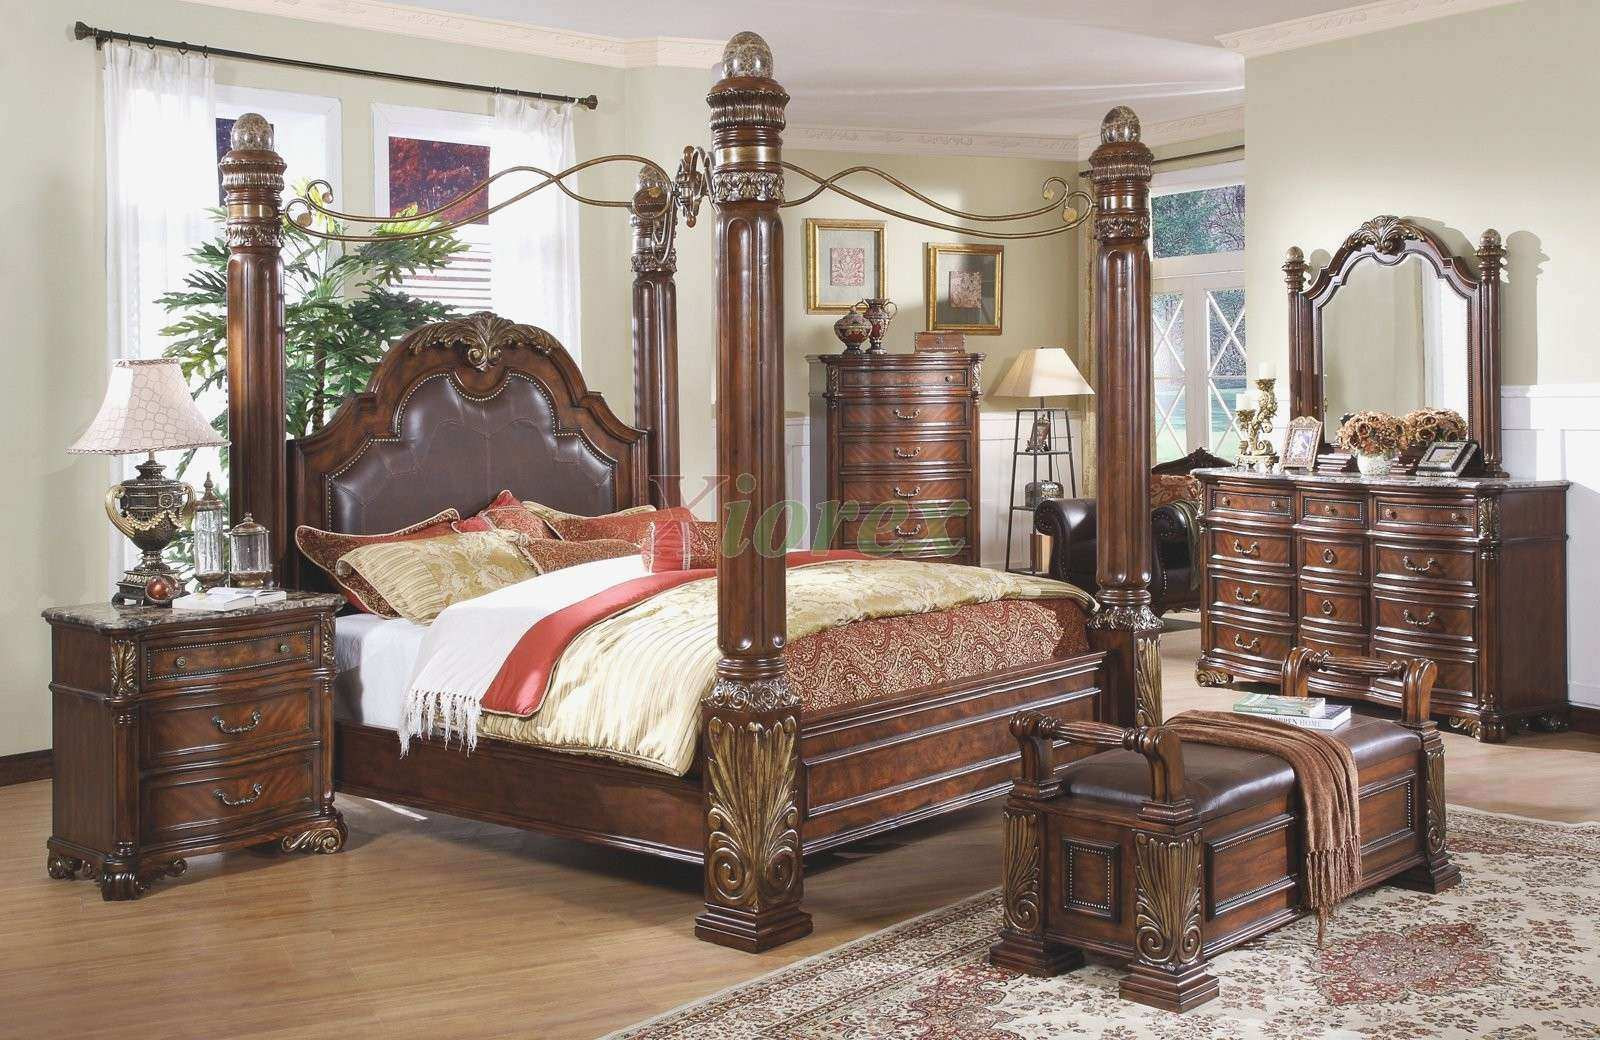 Best ideas about Bedroom Sets For Cheap . Save or Pin The Most Awesome Cheap Canopy Bedroom Sets with Regard to Now.